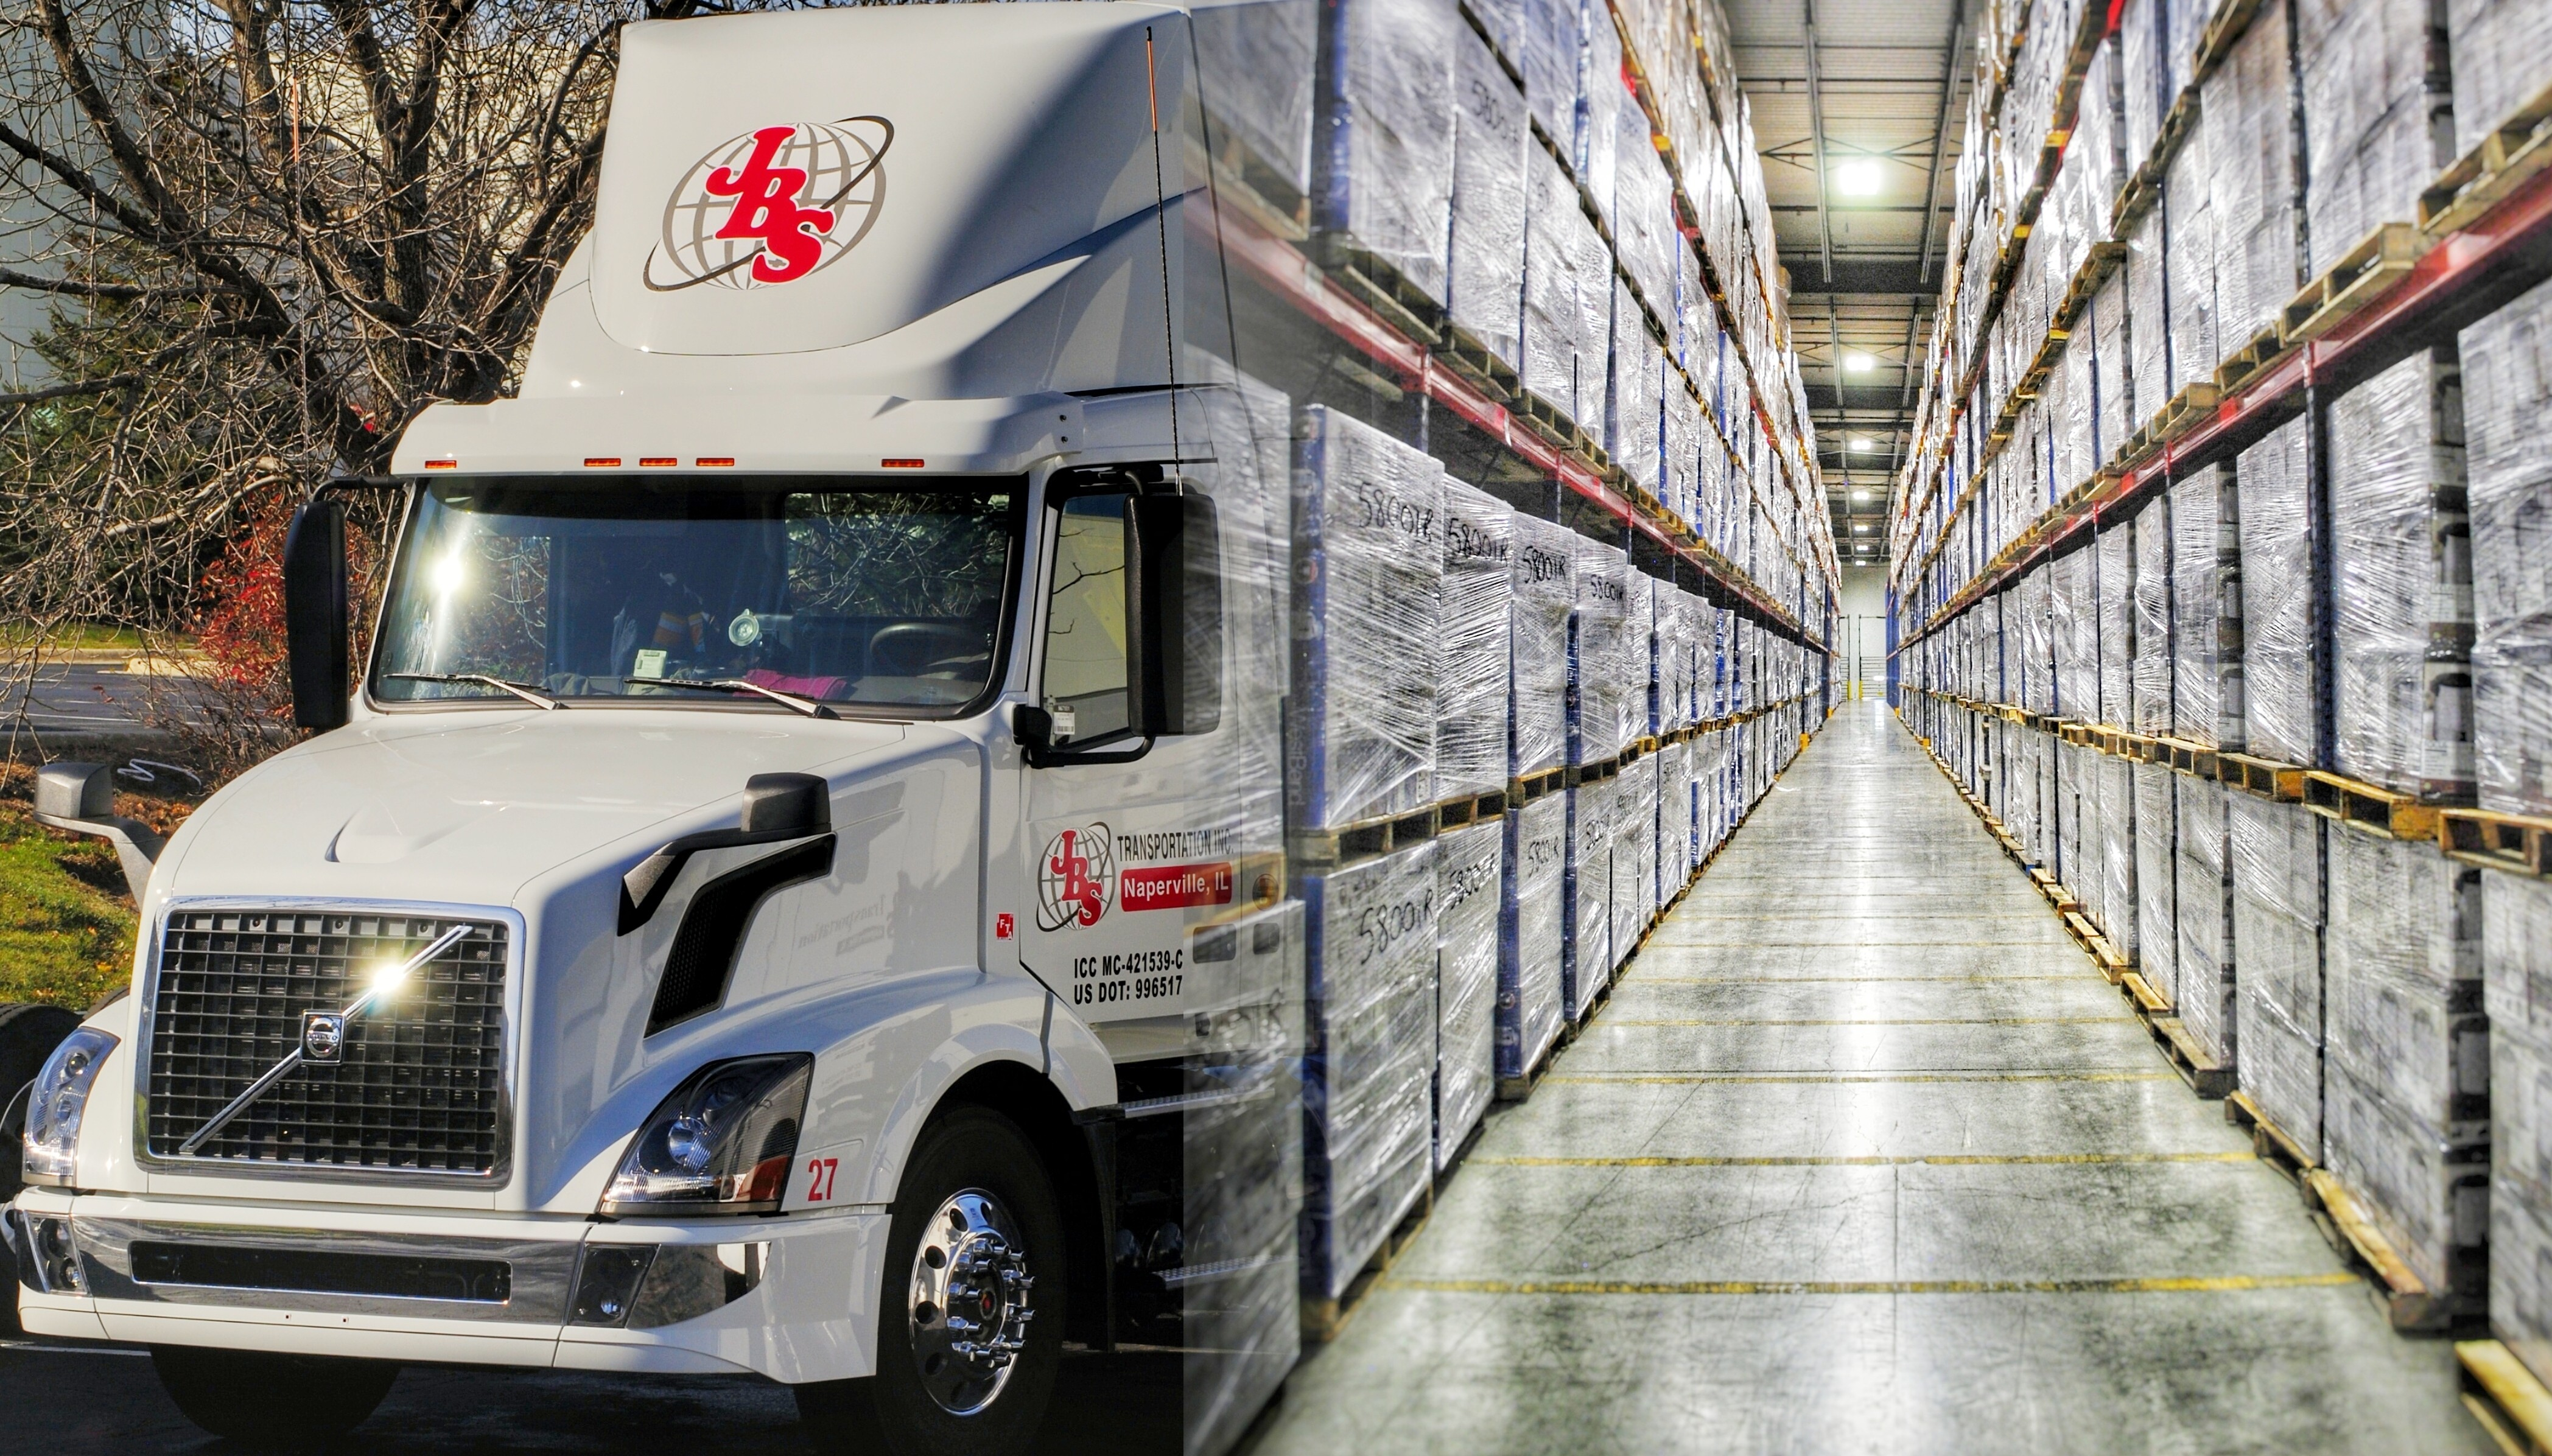 JBS Logistics & Warehousing | LinkedIn